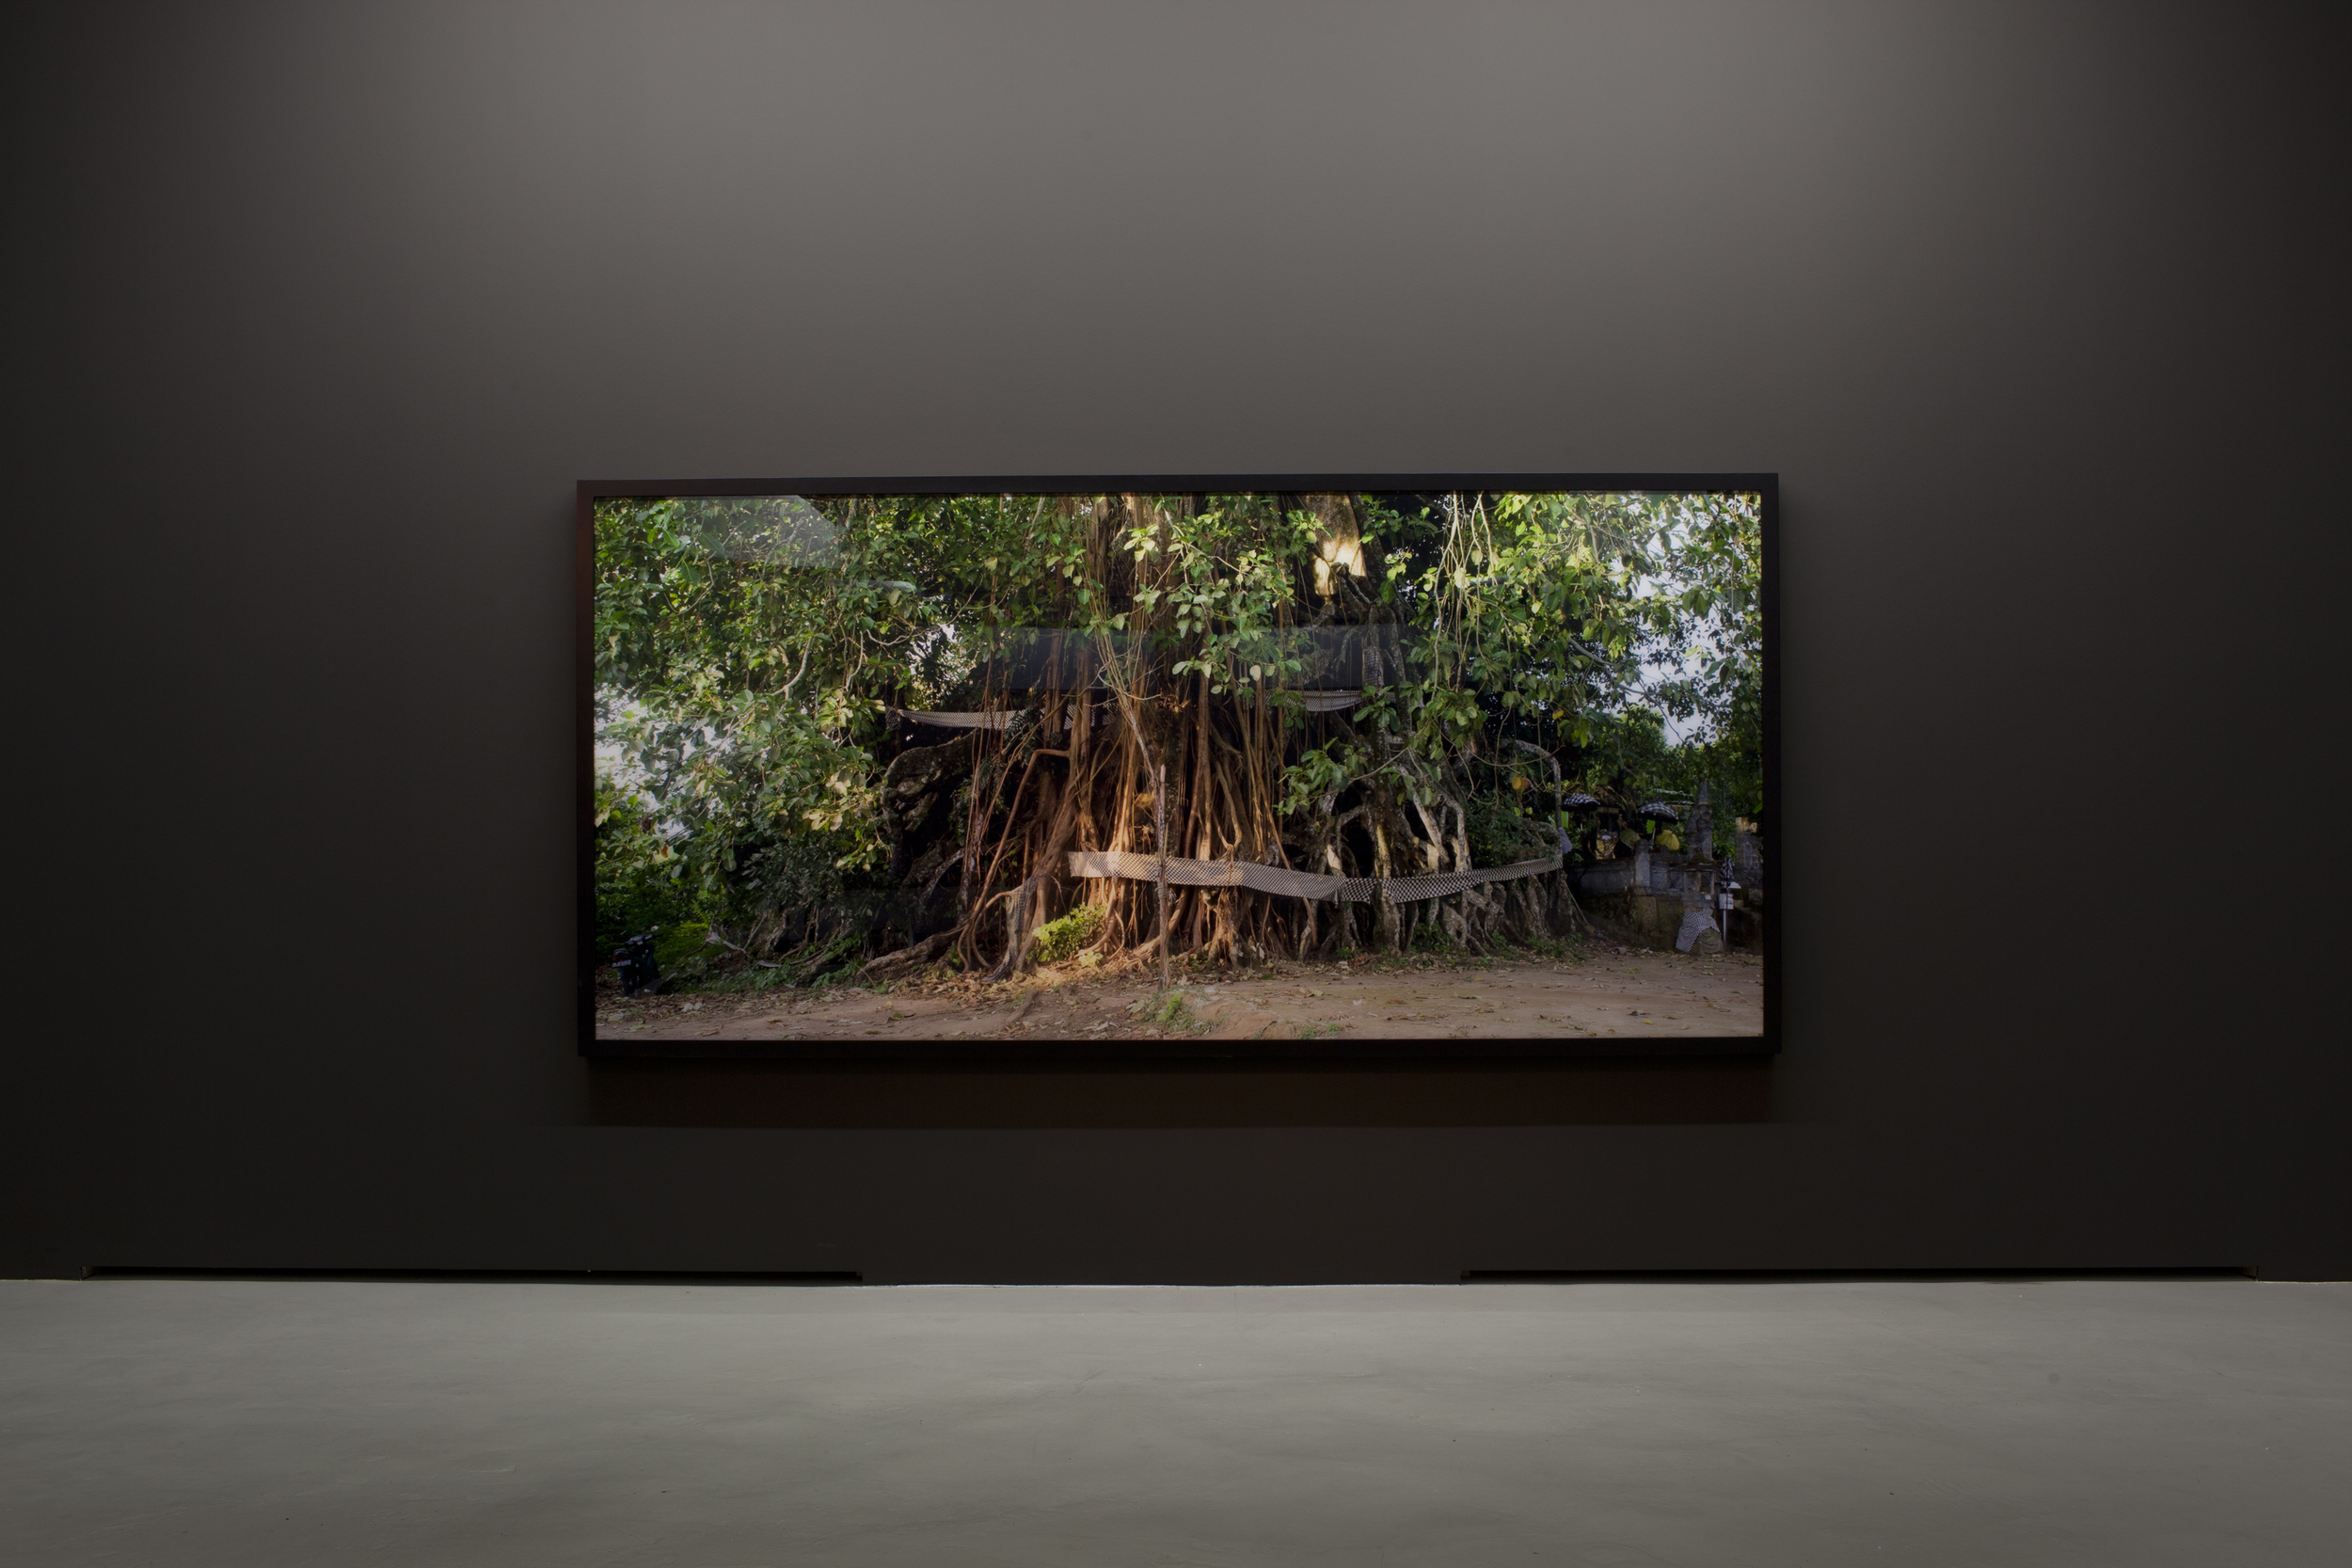 Ritual, death and incantation;  here:  Holy Tree  2011 ,  150 x 320 cm; collection Museum DKM, Duisburg/Germany